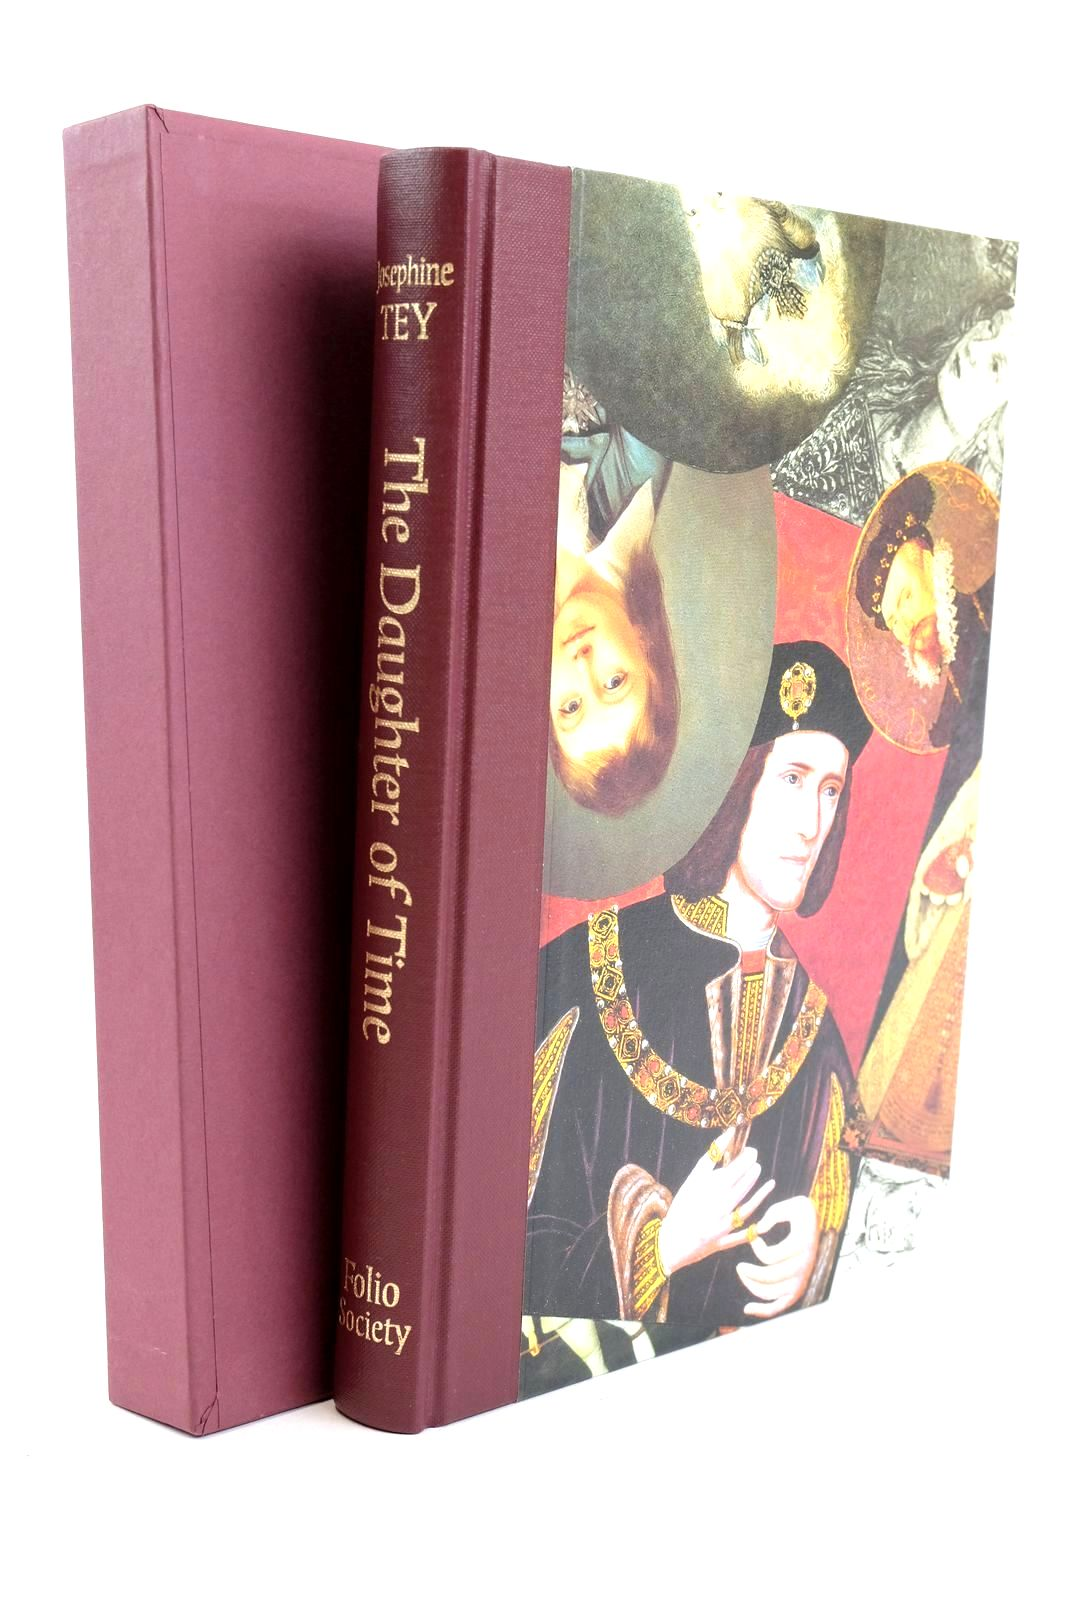 Photo of THE DAUGHTER OF TIME written by Tey, Josephine illustrated by Weller, Lucy published by Folio Society (STOCK CODE: 1319079)  for sale by Stella & Rose's Books